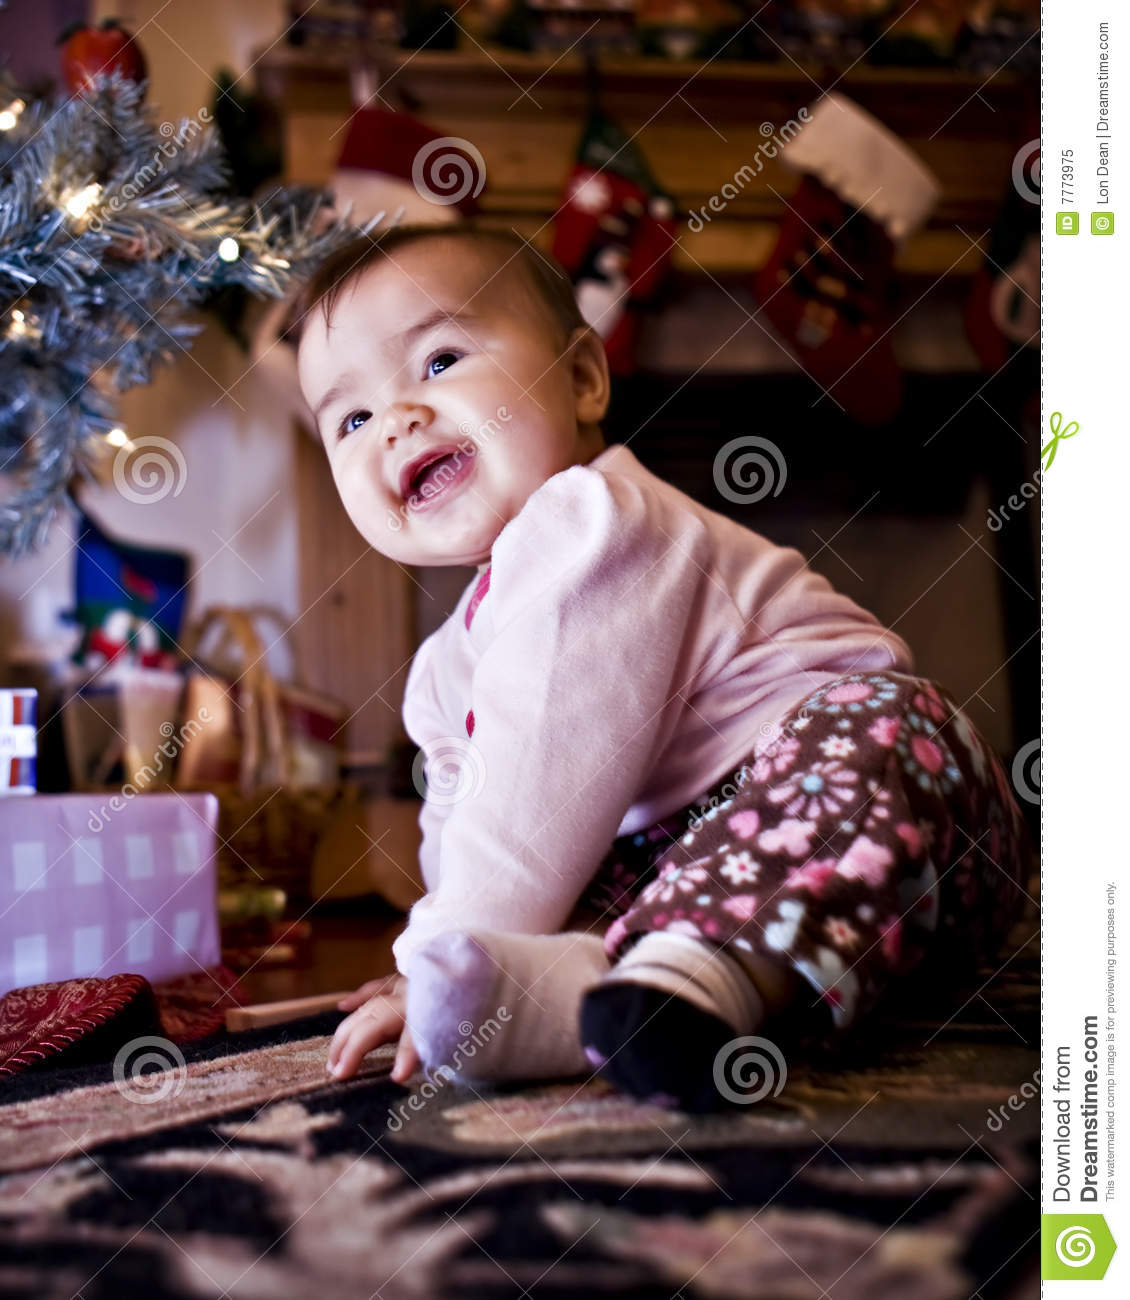 Baby Christmas Trees: Baby Under Christmas Tree Stock Image. Image Of Happy